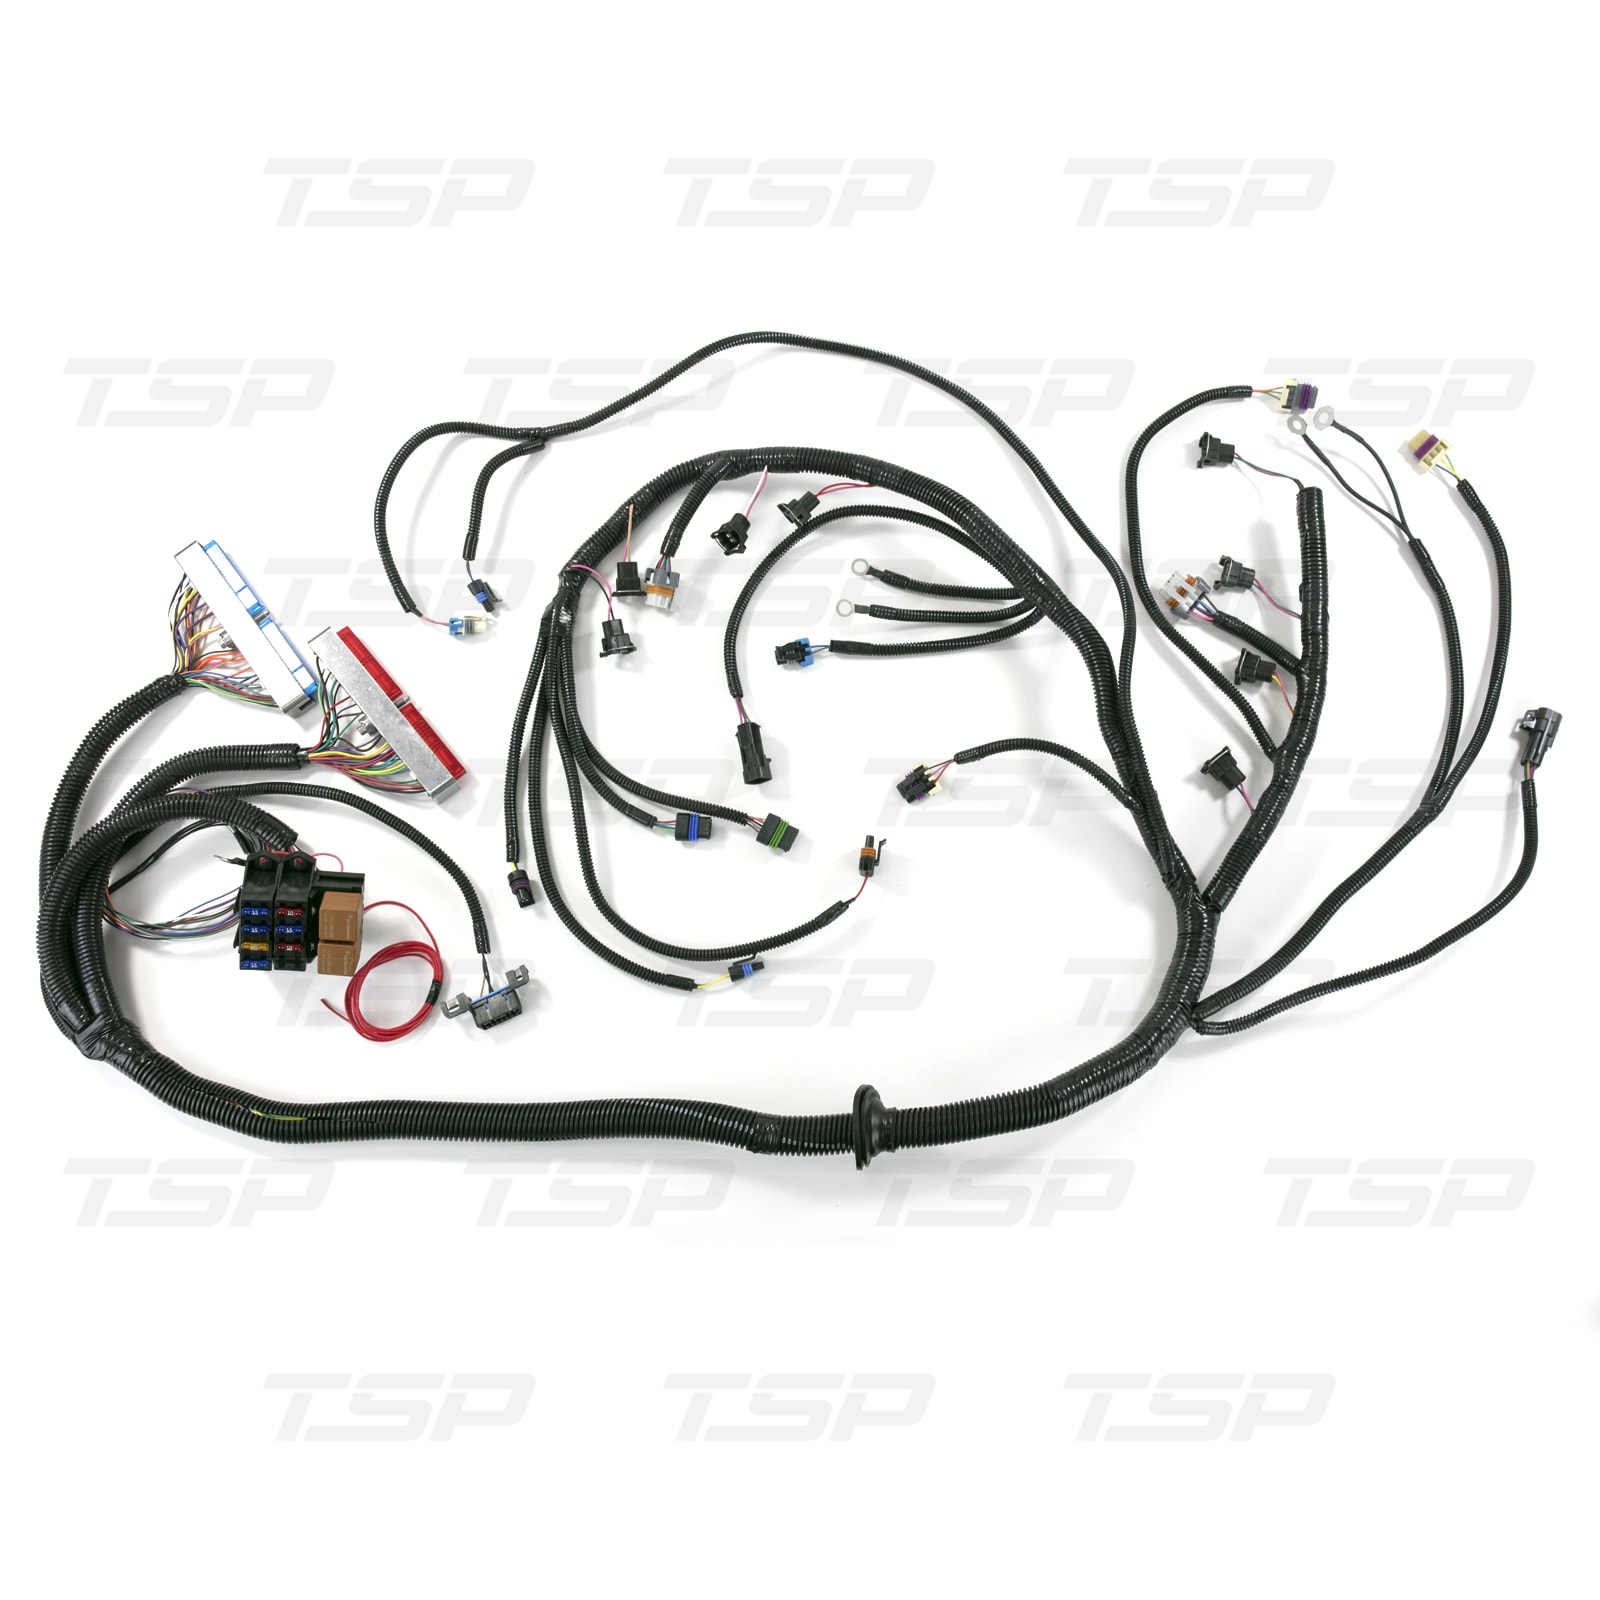 [NRIO_4796]   STANDALONE WIRING HARNESS FOR DRIVE-BY-CABLE LS1 WITH T56 MANUAL  TRANSMISSION | T56 Wiring Harness |  | F-Body Speed llc